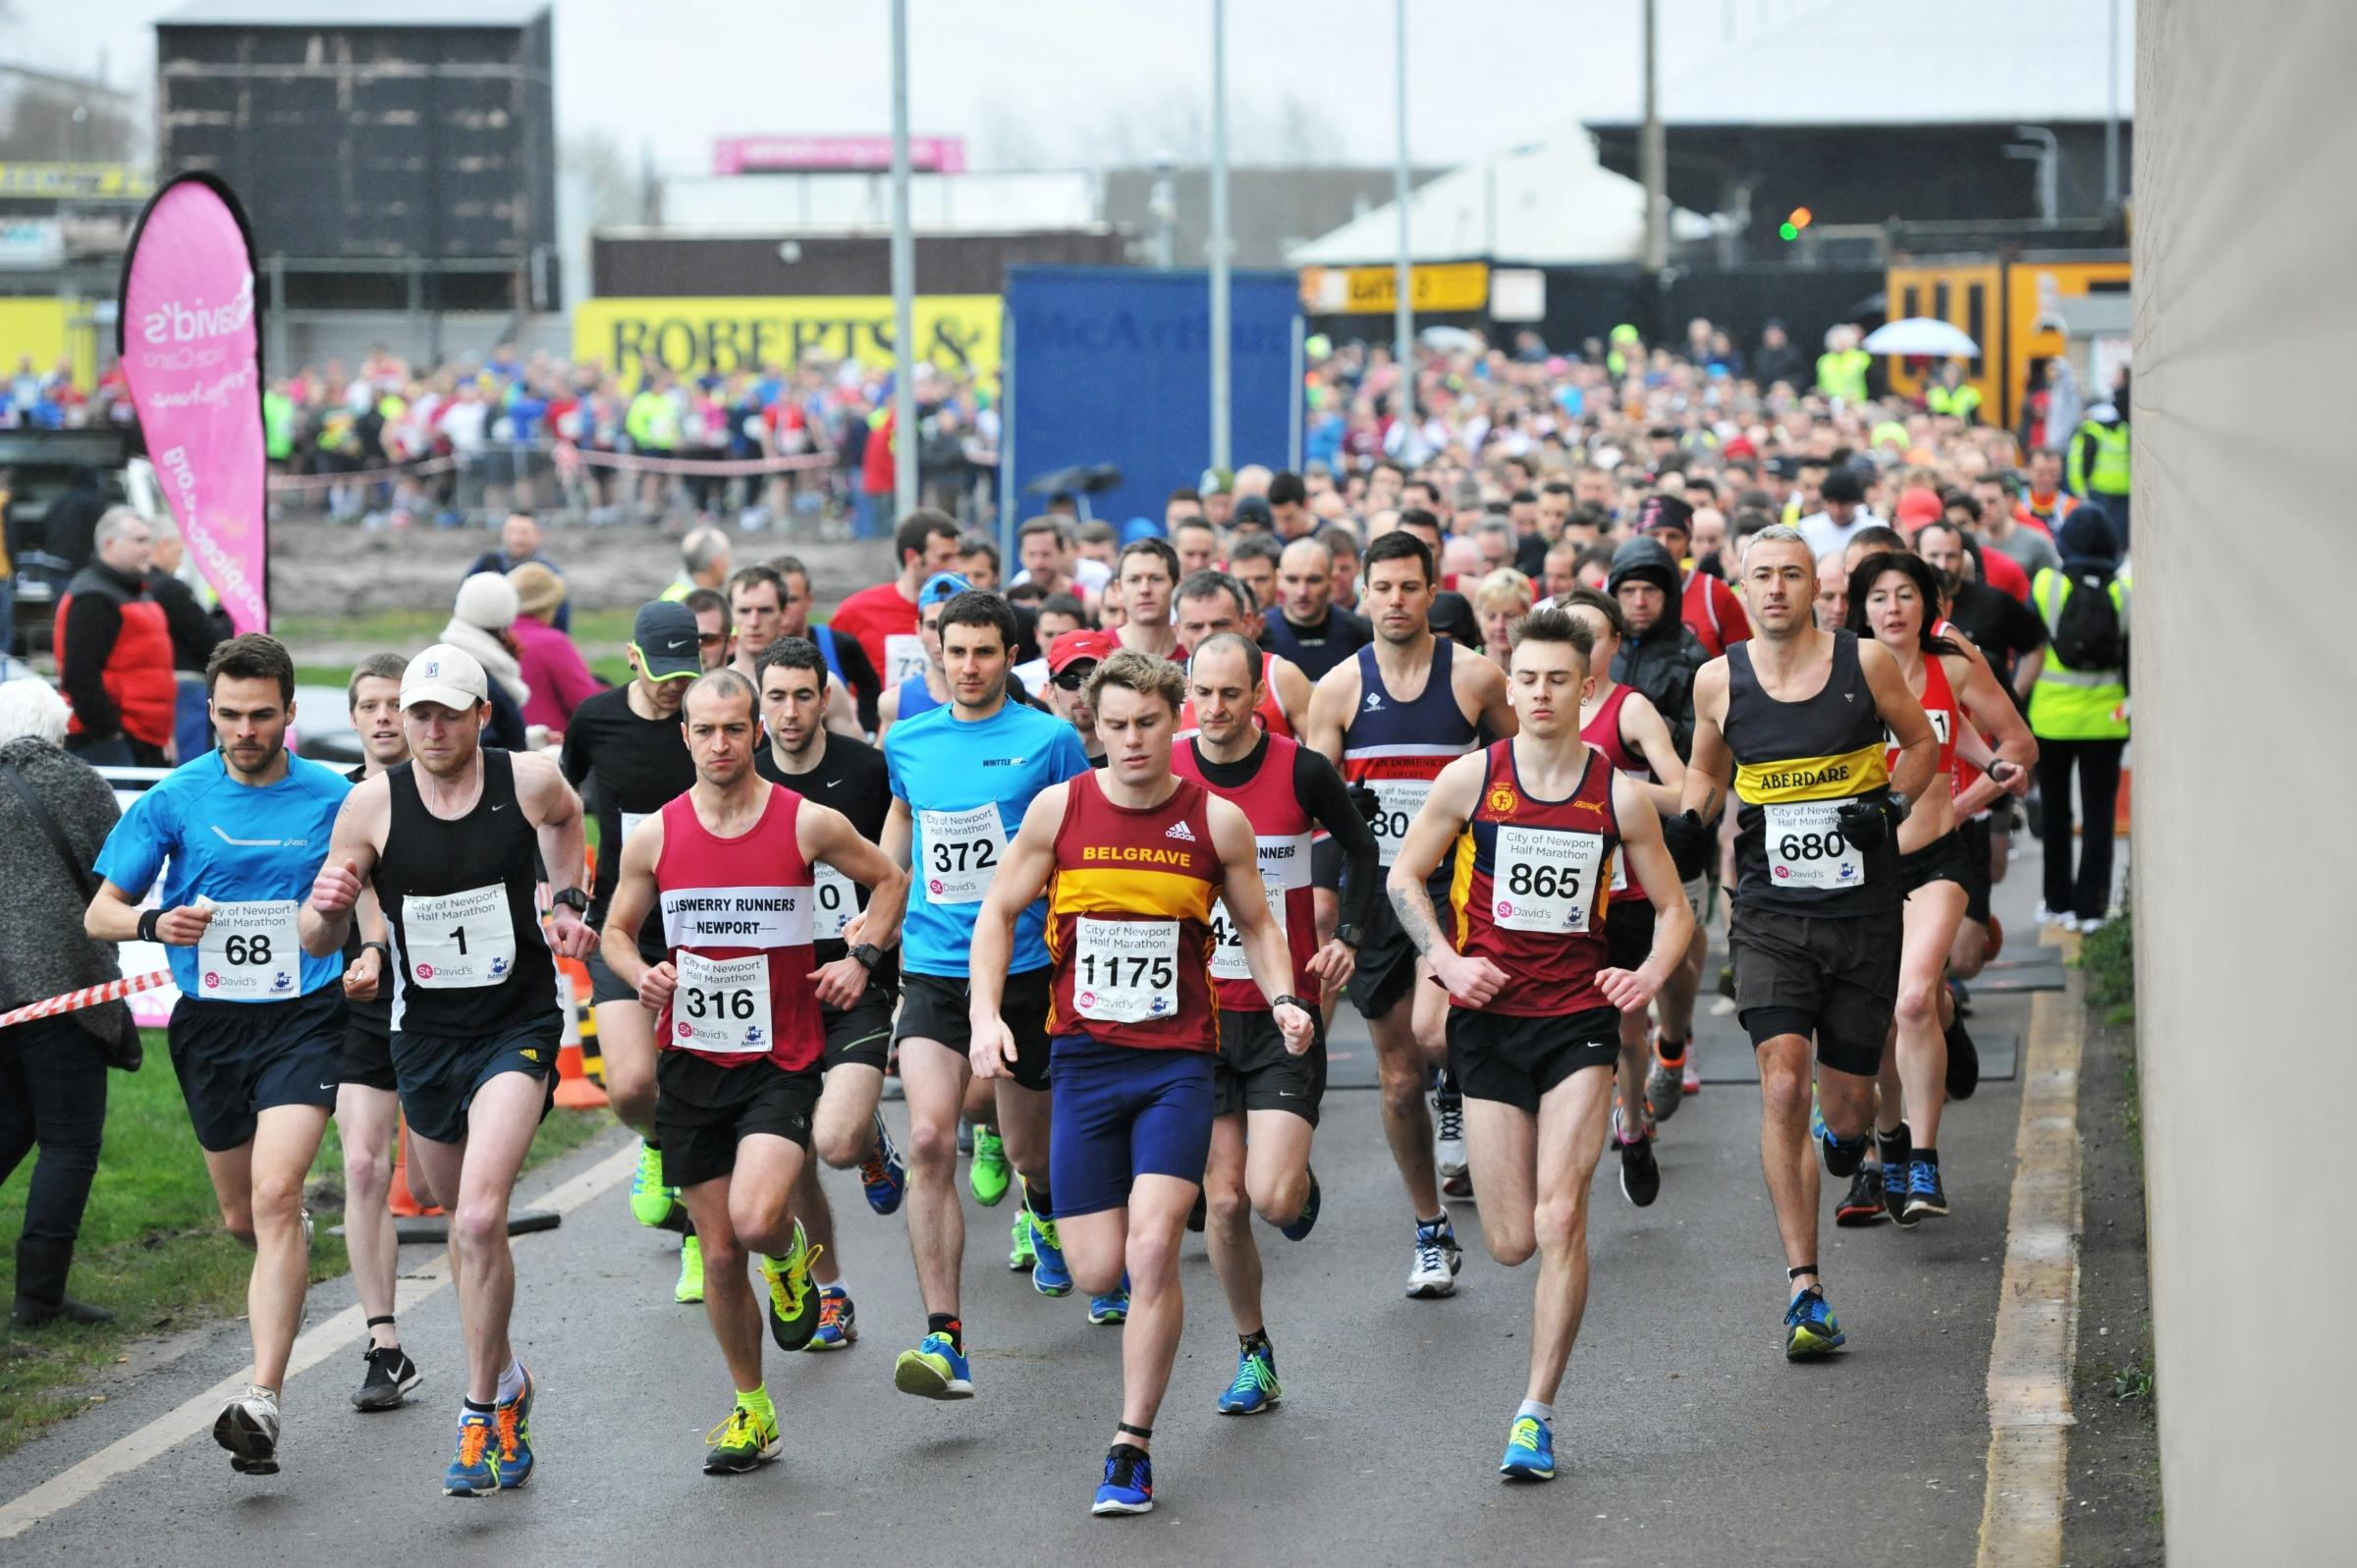 PICTURES: Carnival atmosphere as 1,200 run Newport half marathon